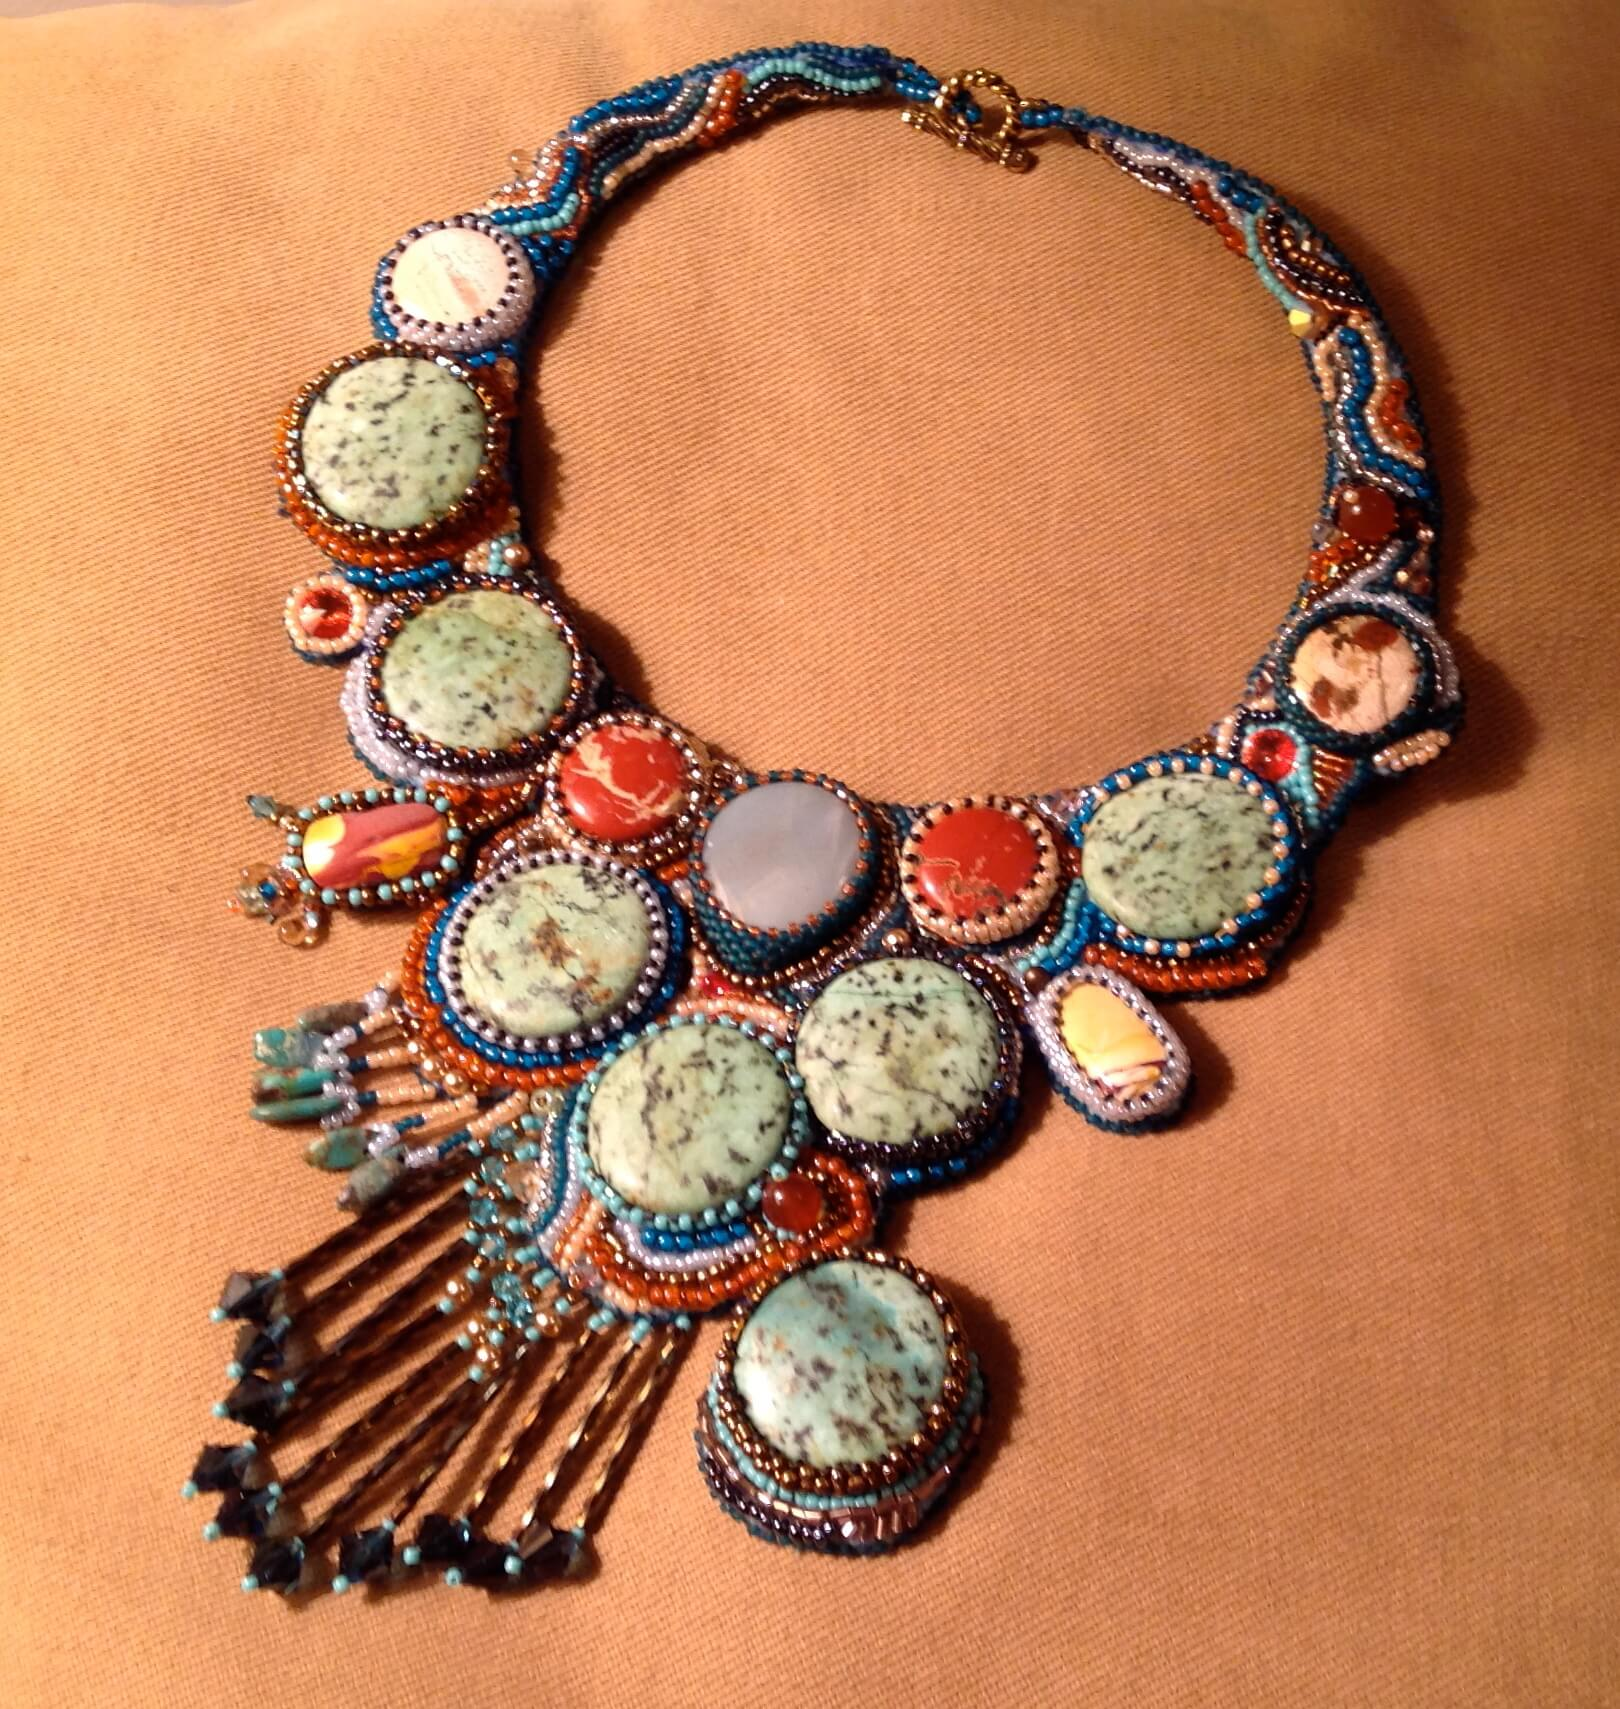 Andrea Beadazzles by Andrea Feinberg, handcrafted jewelry, beadwork, bead jewelry